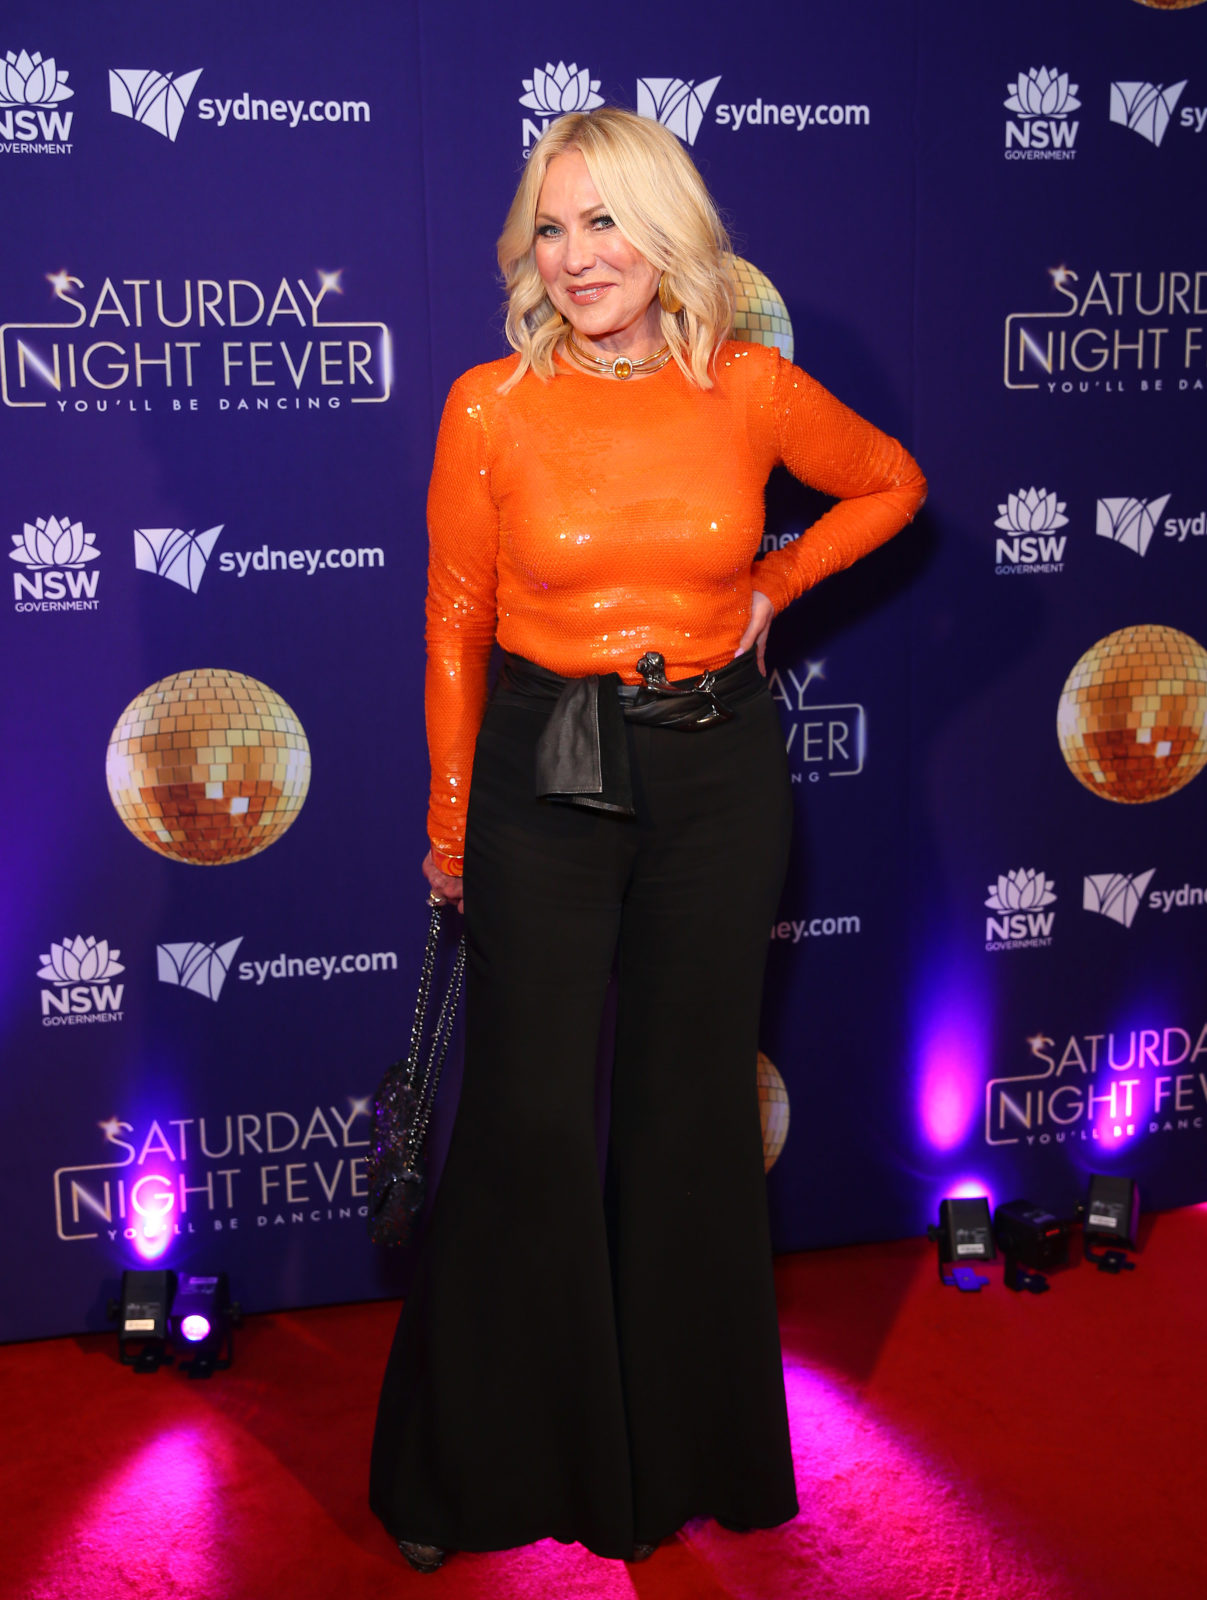 Kerri-Anne Kennerley made her first public appearance since her husband's death in a bold 1970s inspired outfit.